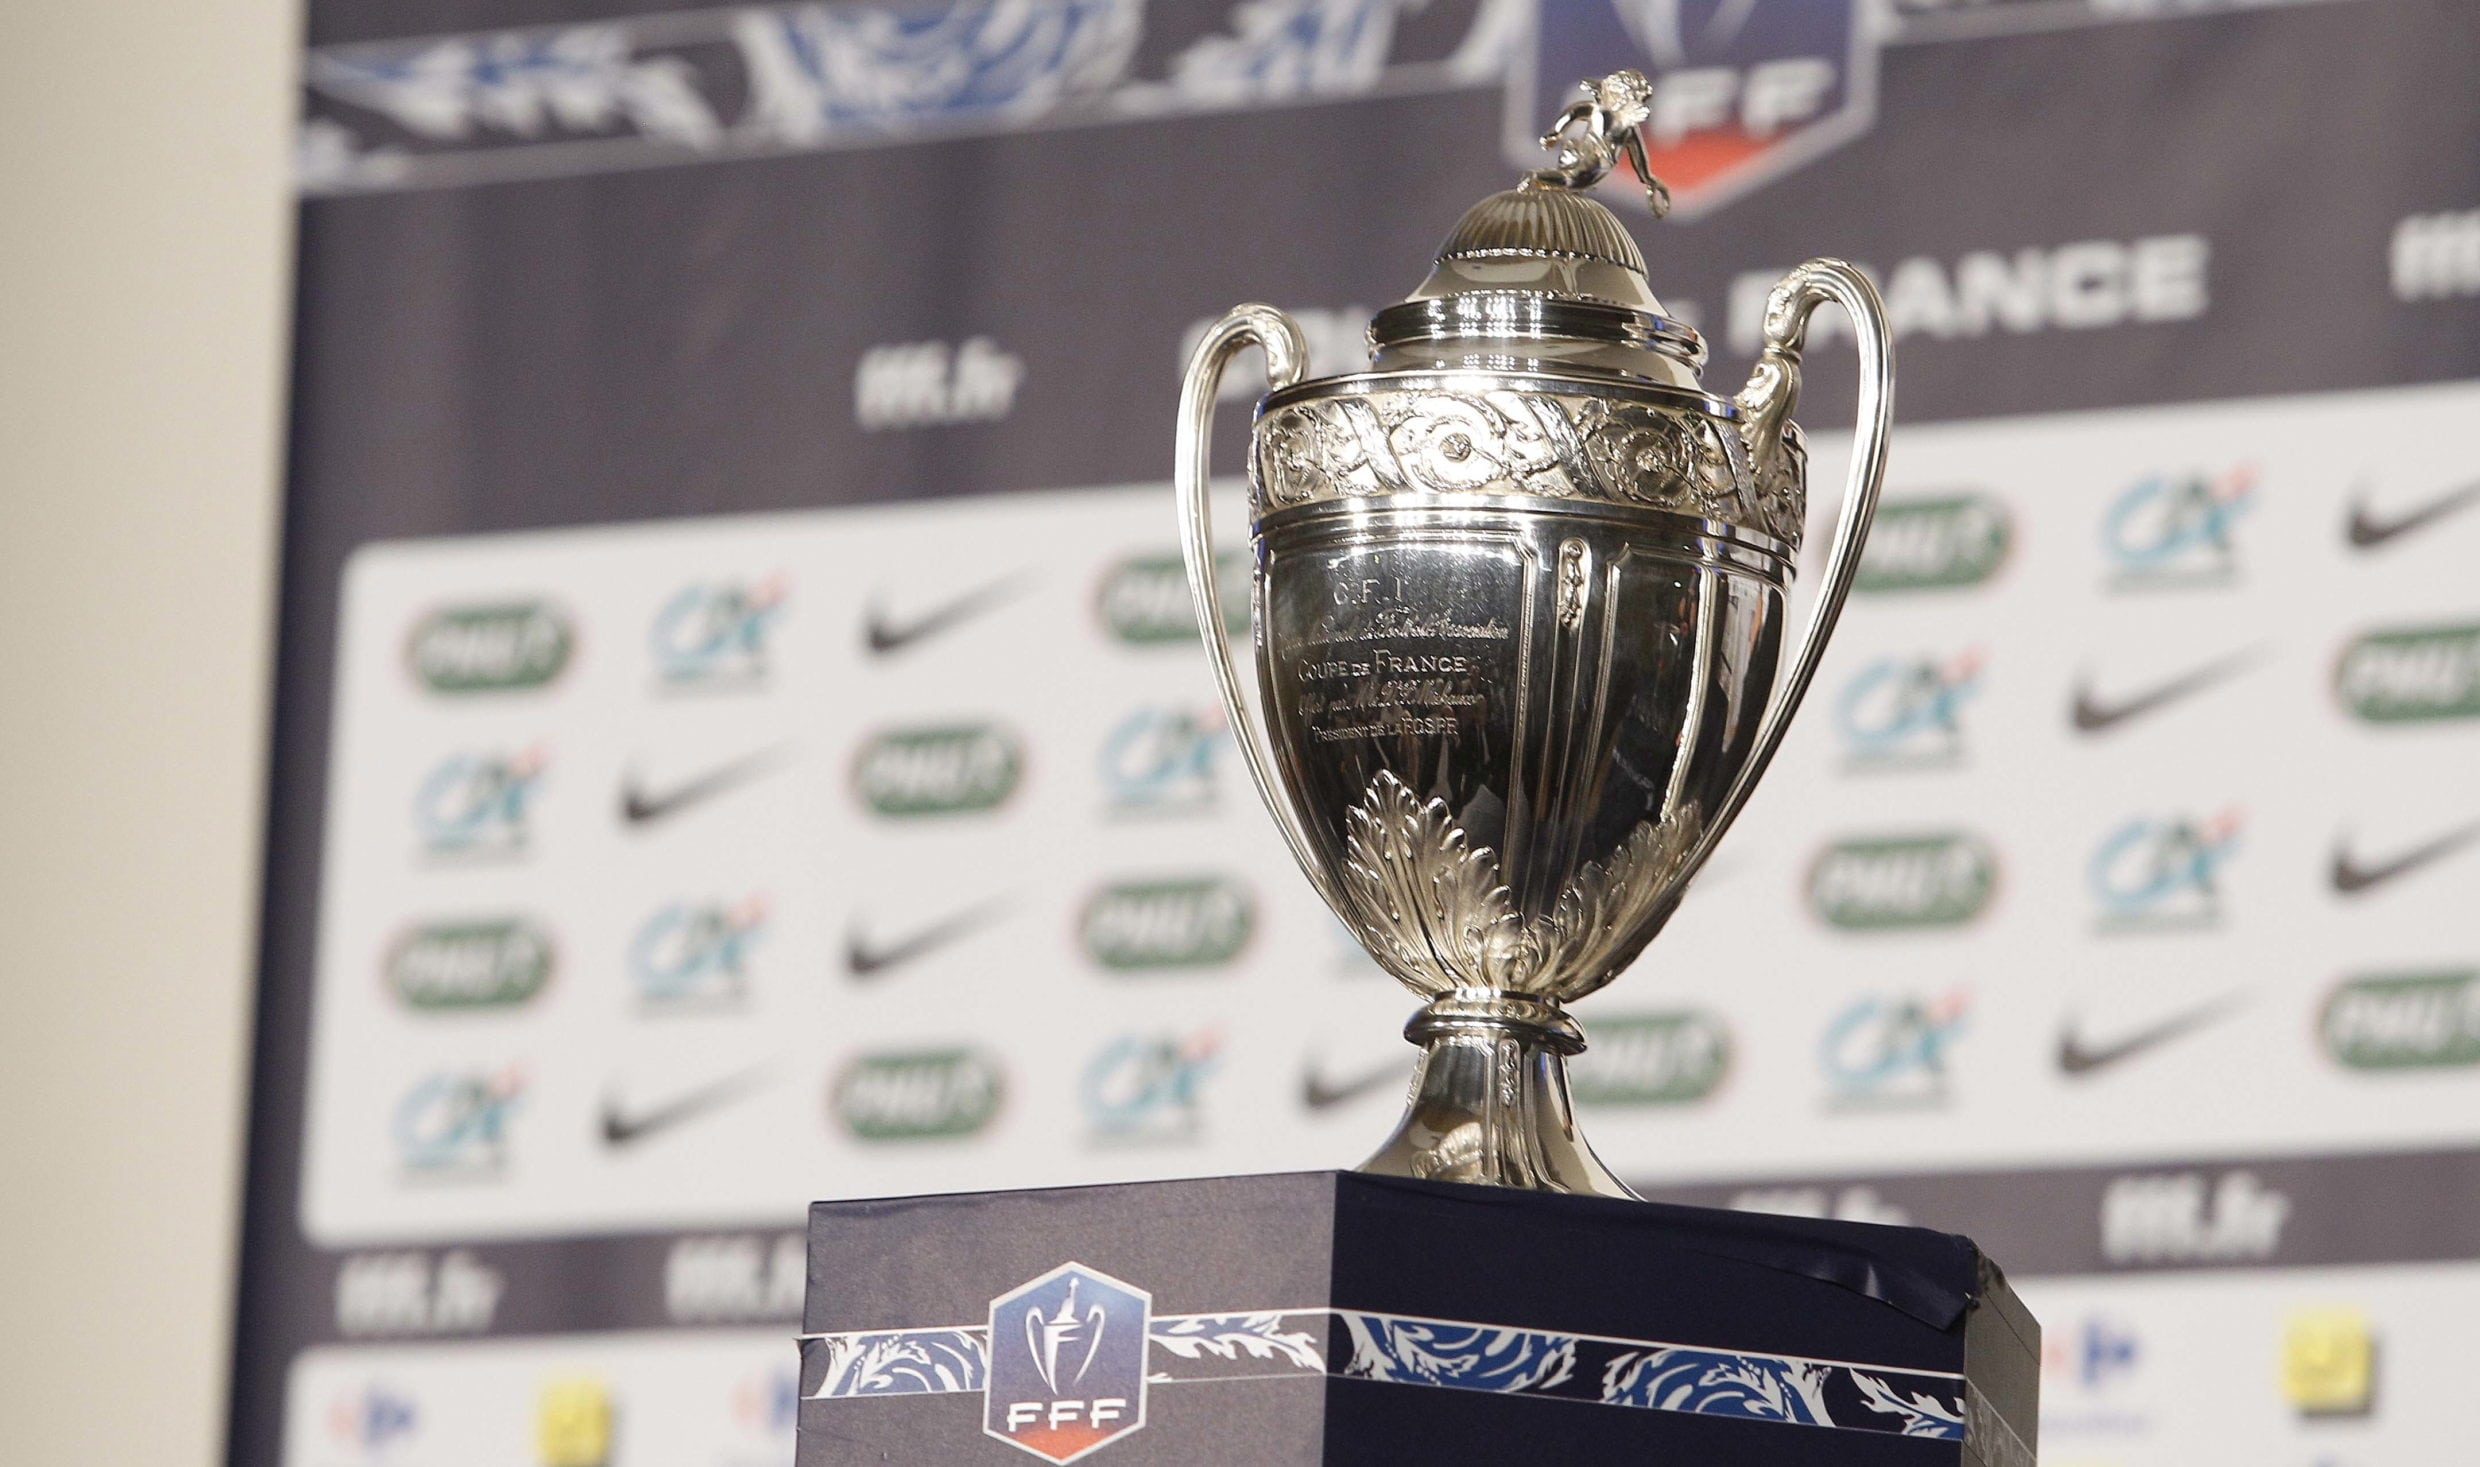 Les r sultats de la coupe de france red star football club - Resultats de la coupe de france ...